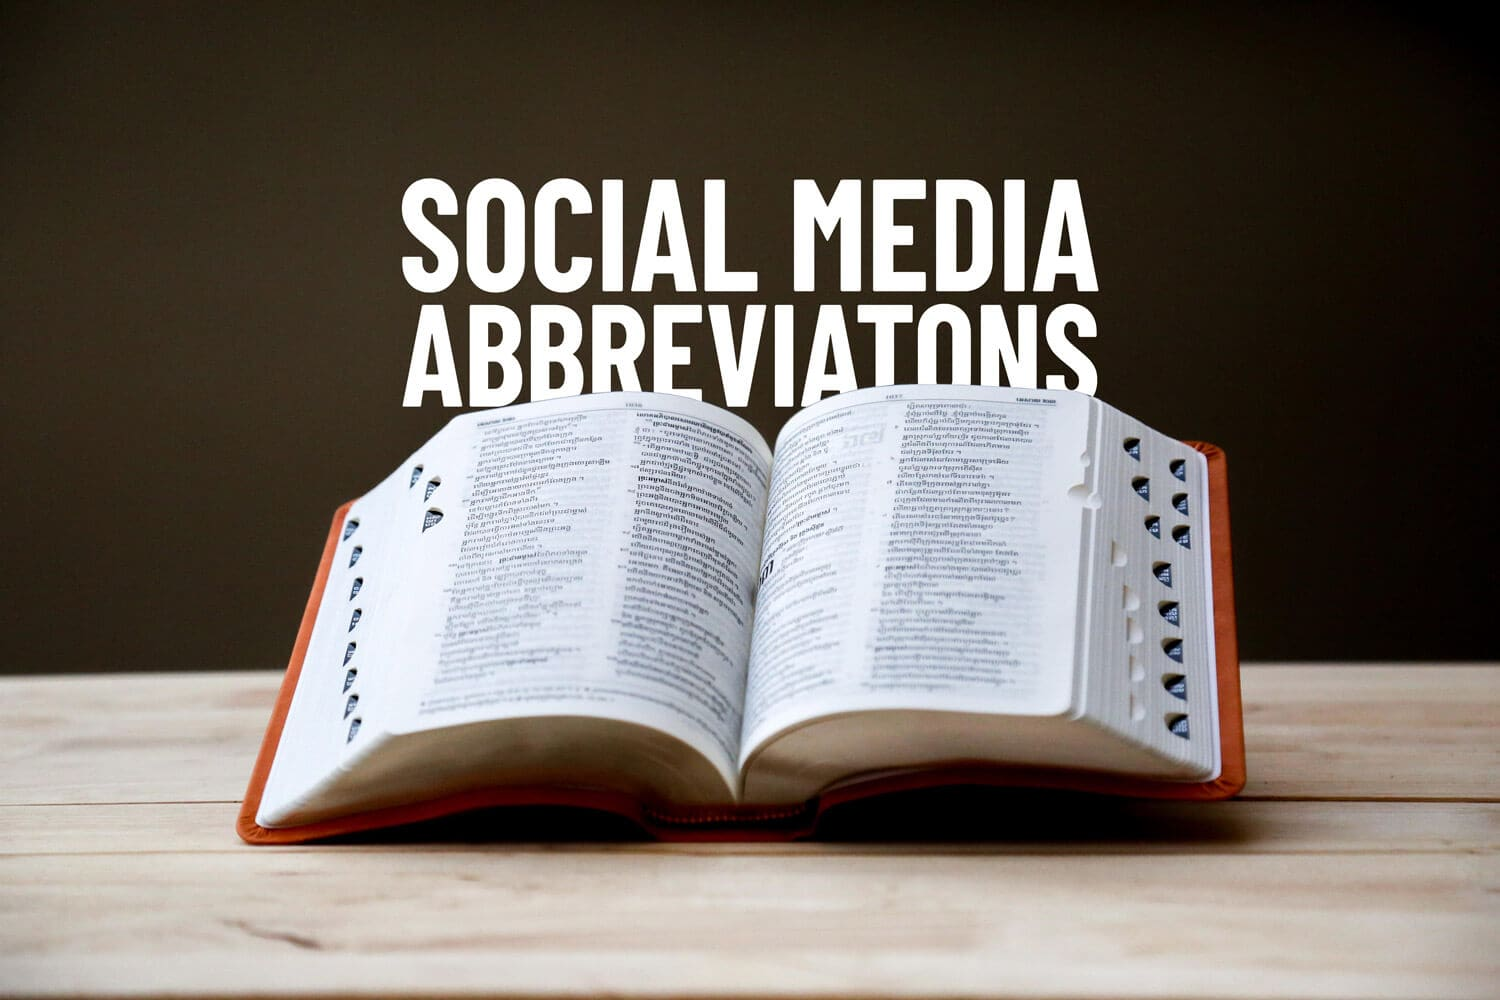 Social Media Acronyms and Abbreviations